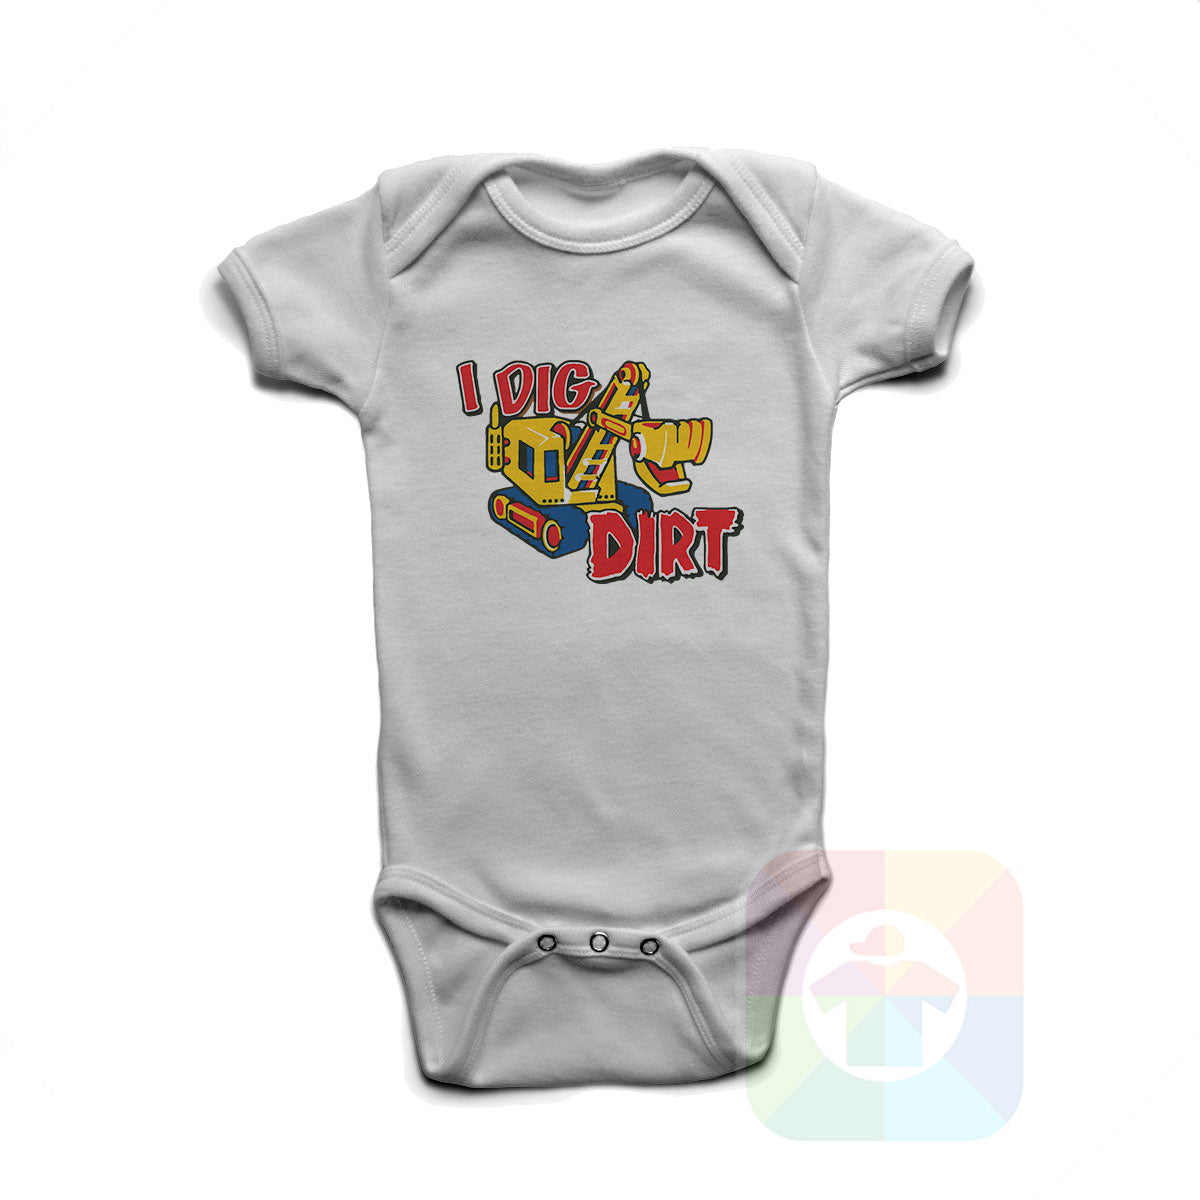 A WHITE Baby Onesie with the  ' Baby onesie 'I DIG DIRT' kids funny novelty design. #8159 / New Born, 6m, 12m, 24m Sizes ' design.